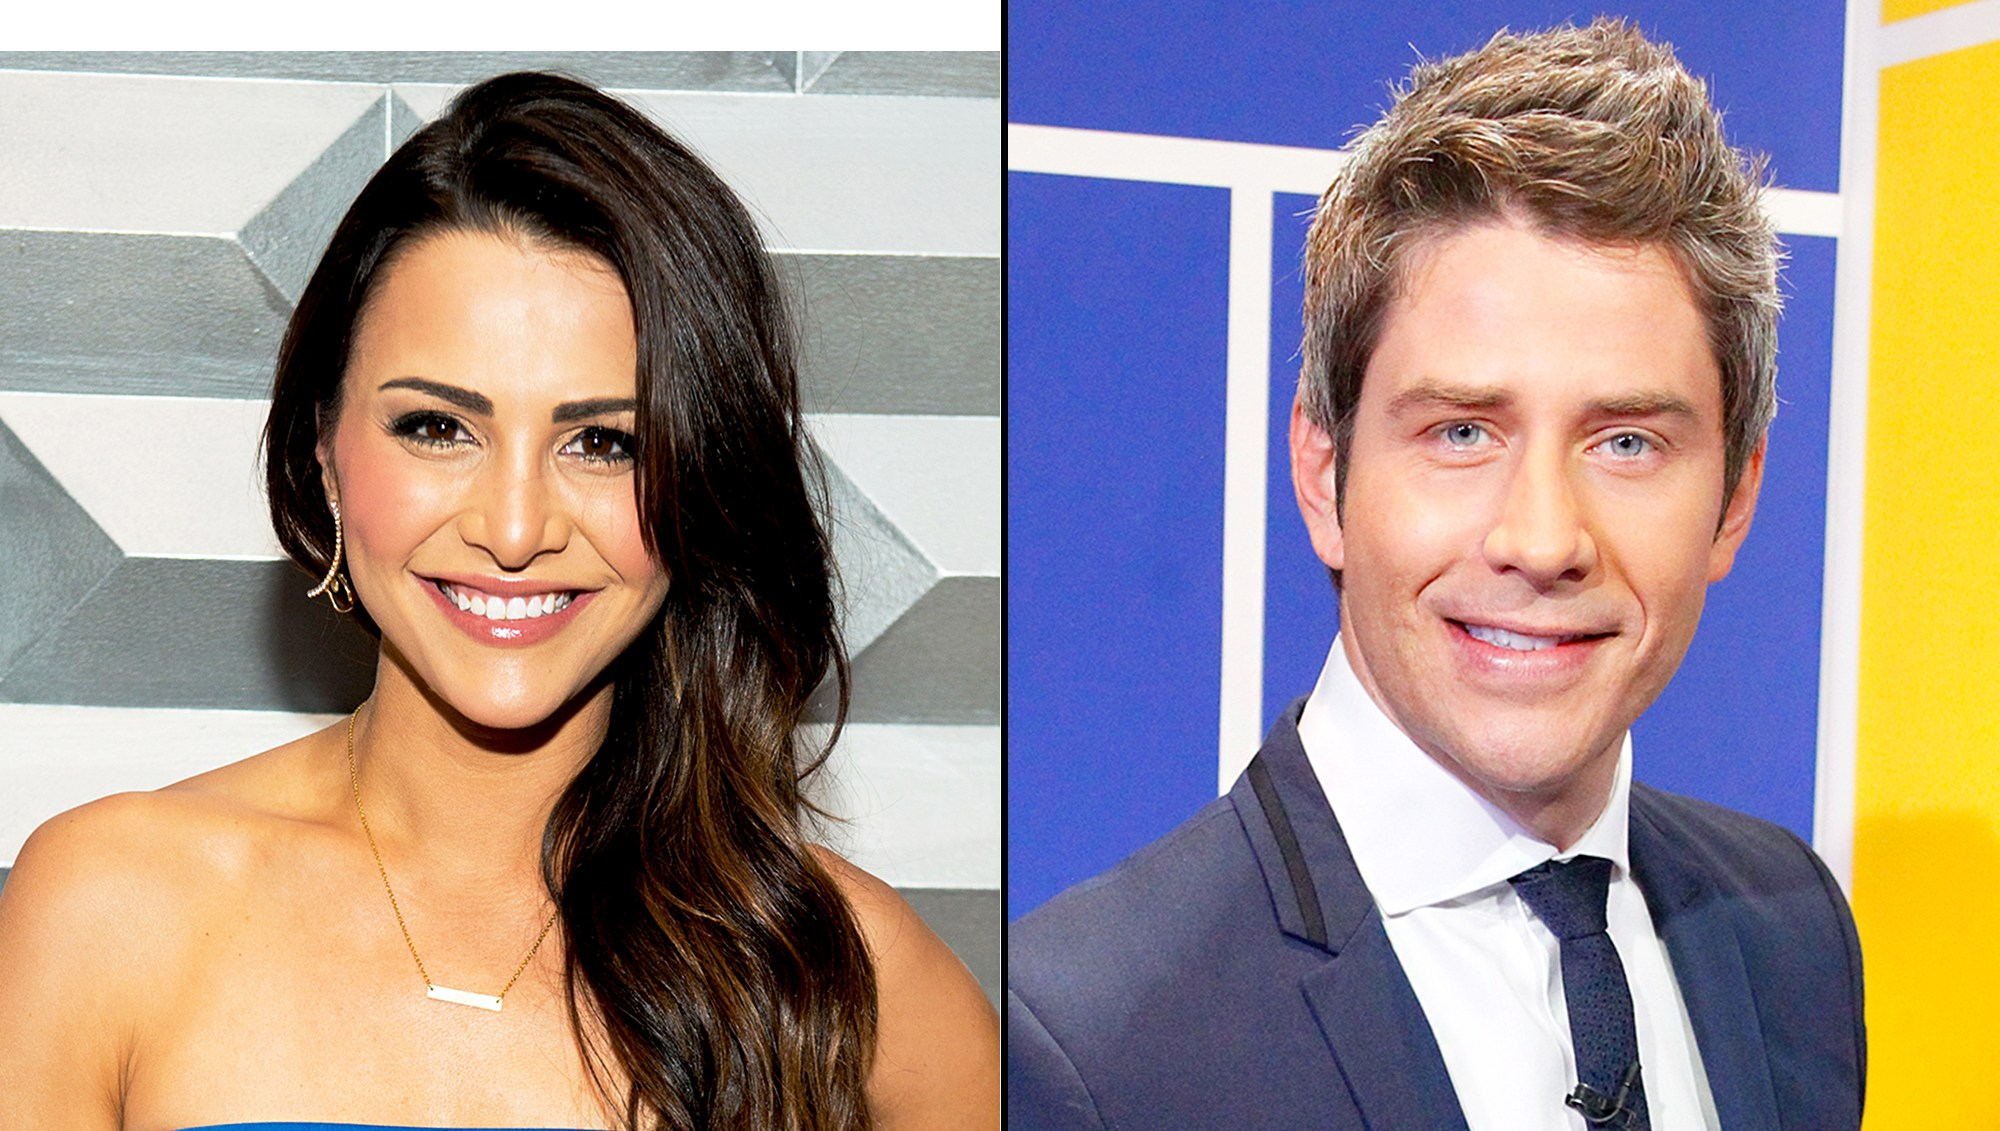 Andi Dorfman and Arie Luyendyk Jr.